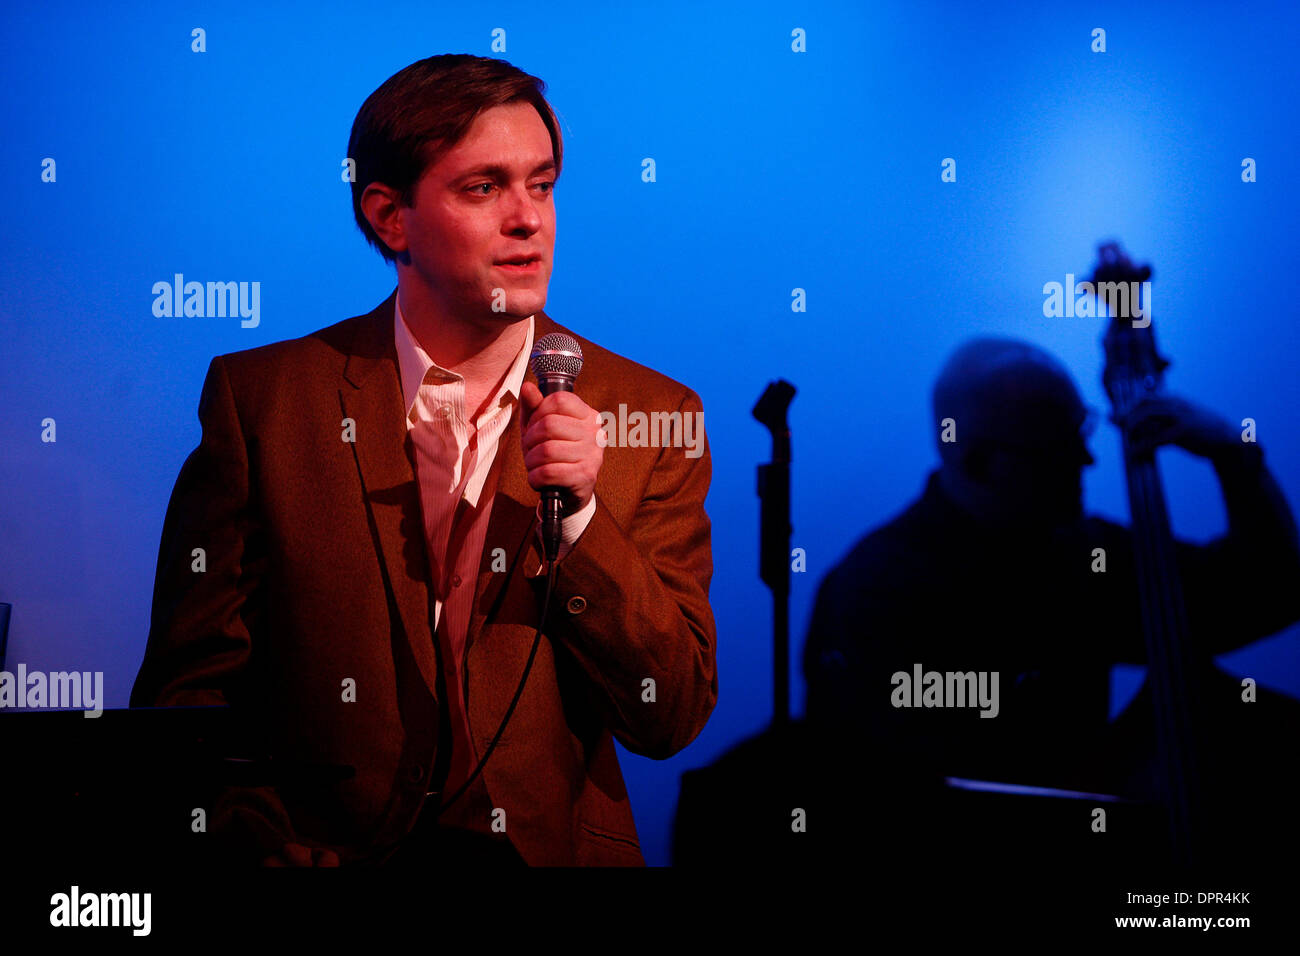 Jan 06, 2009 - New York, New York, USA - Singer MORGAN SILLS performing at The Metropolitan Room. (Credit Image: © Aviv Small/ZUMA Press) - Stock Image